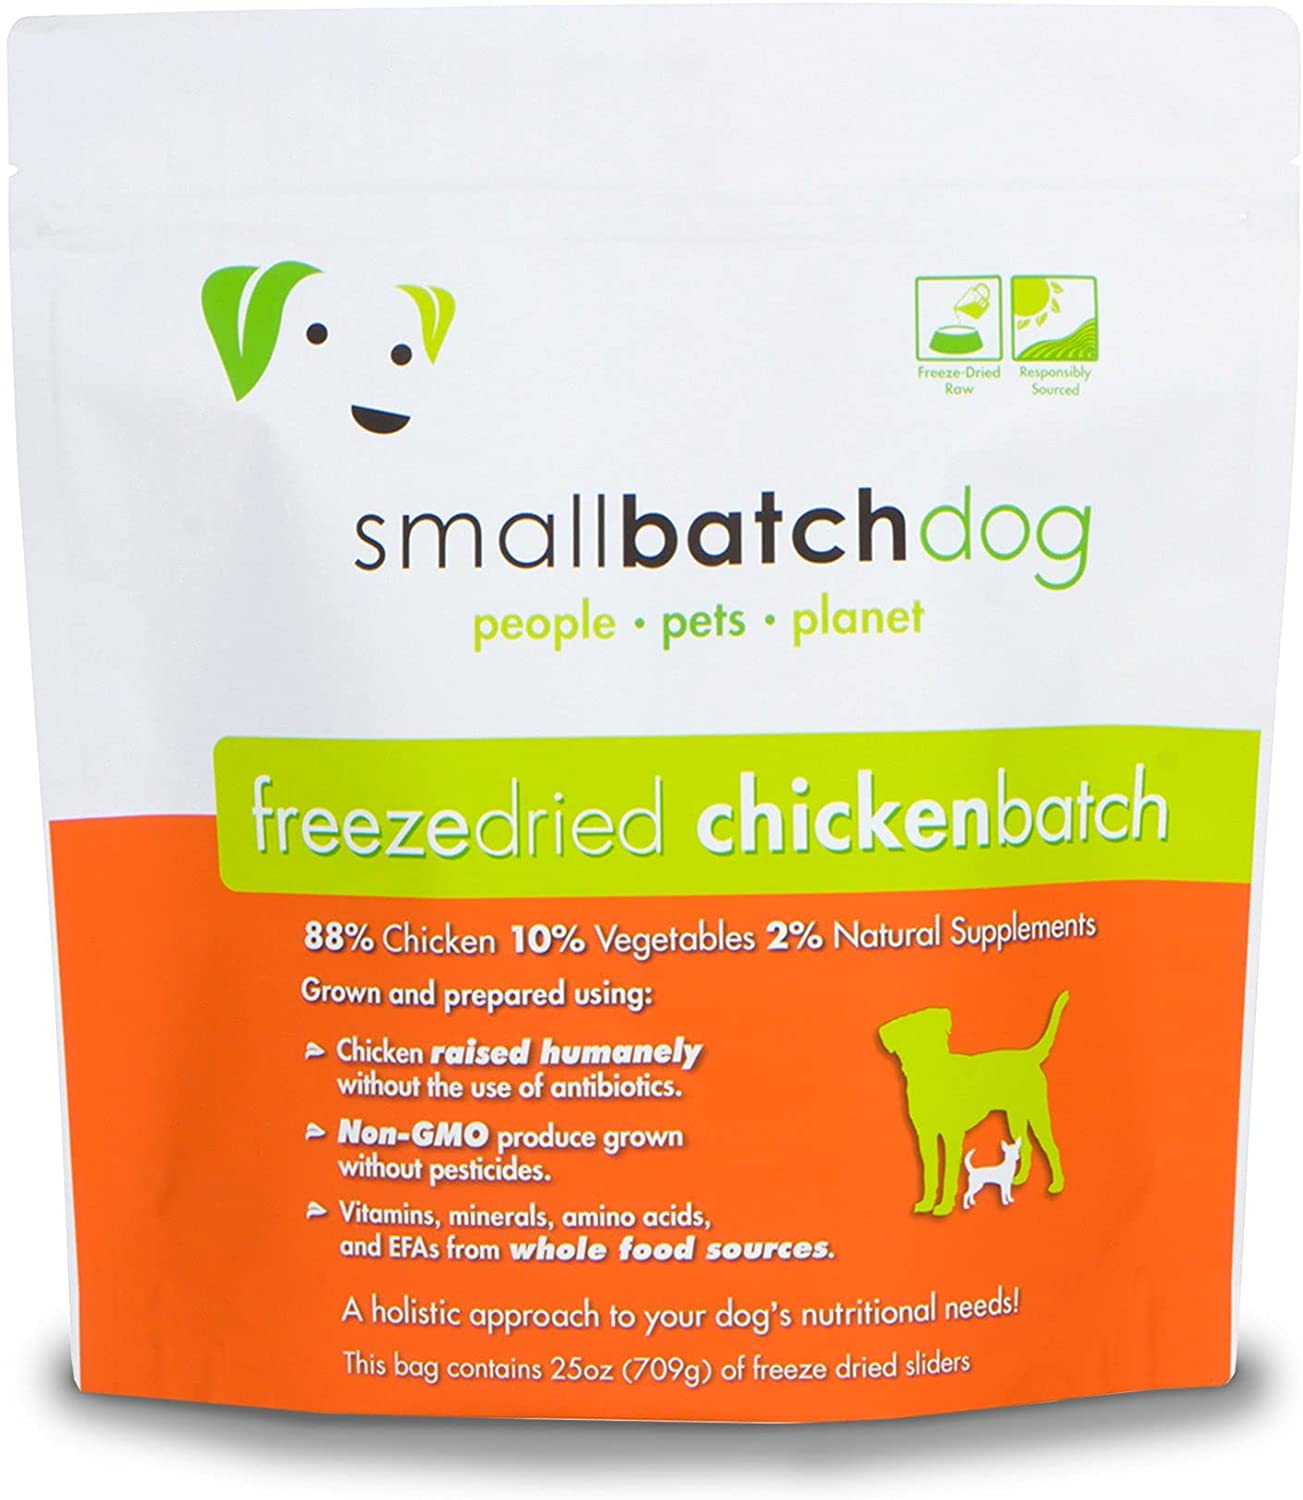 Smallbatch Pets Freeze-Dried Premium Raw Food Diet for Dogs, 25oz, Chicken Recipe, Bulk Bag, Made in The USA, Organic Produce, Humanely Raised Meat, Hydrate and Serve Patties, Wholesome & Healthy